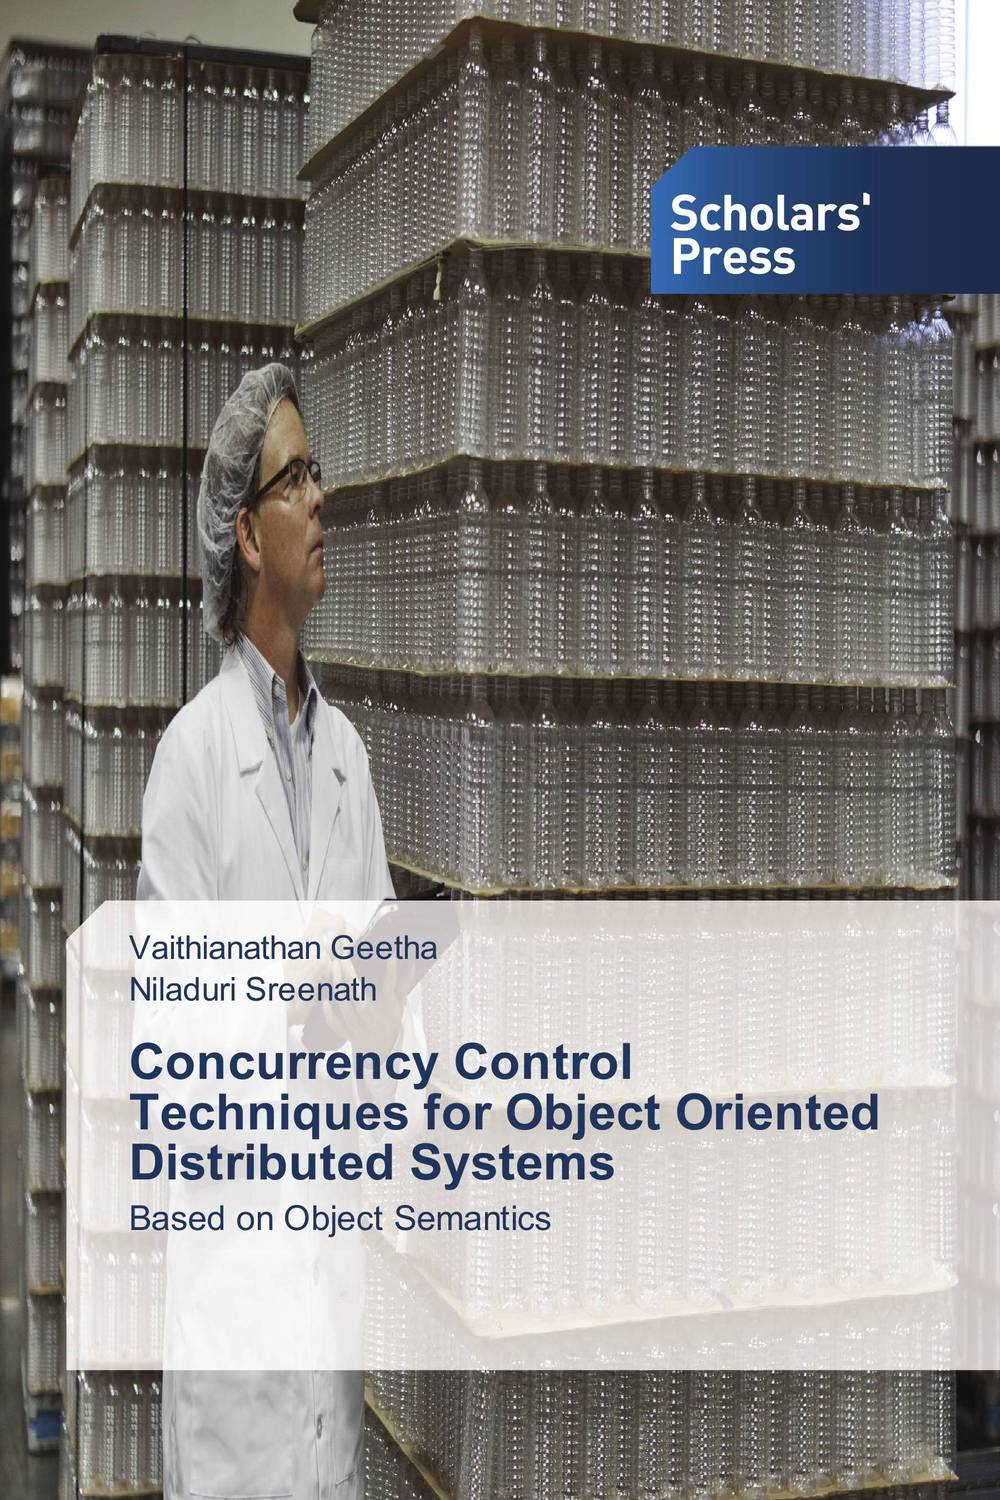 Concurrency Control Techniques for Object Oriented Distributed Systems 软件工程师典藏:php开发典型模块大全(修订版)(附光盘1张)